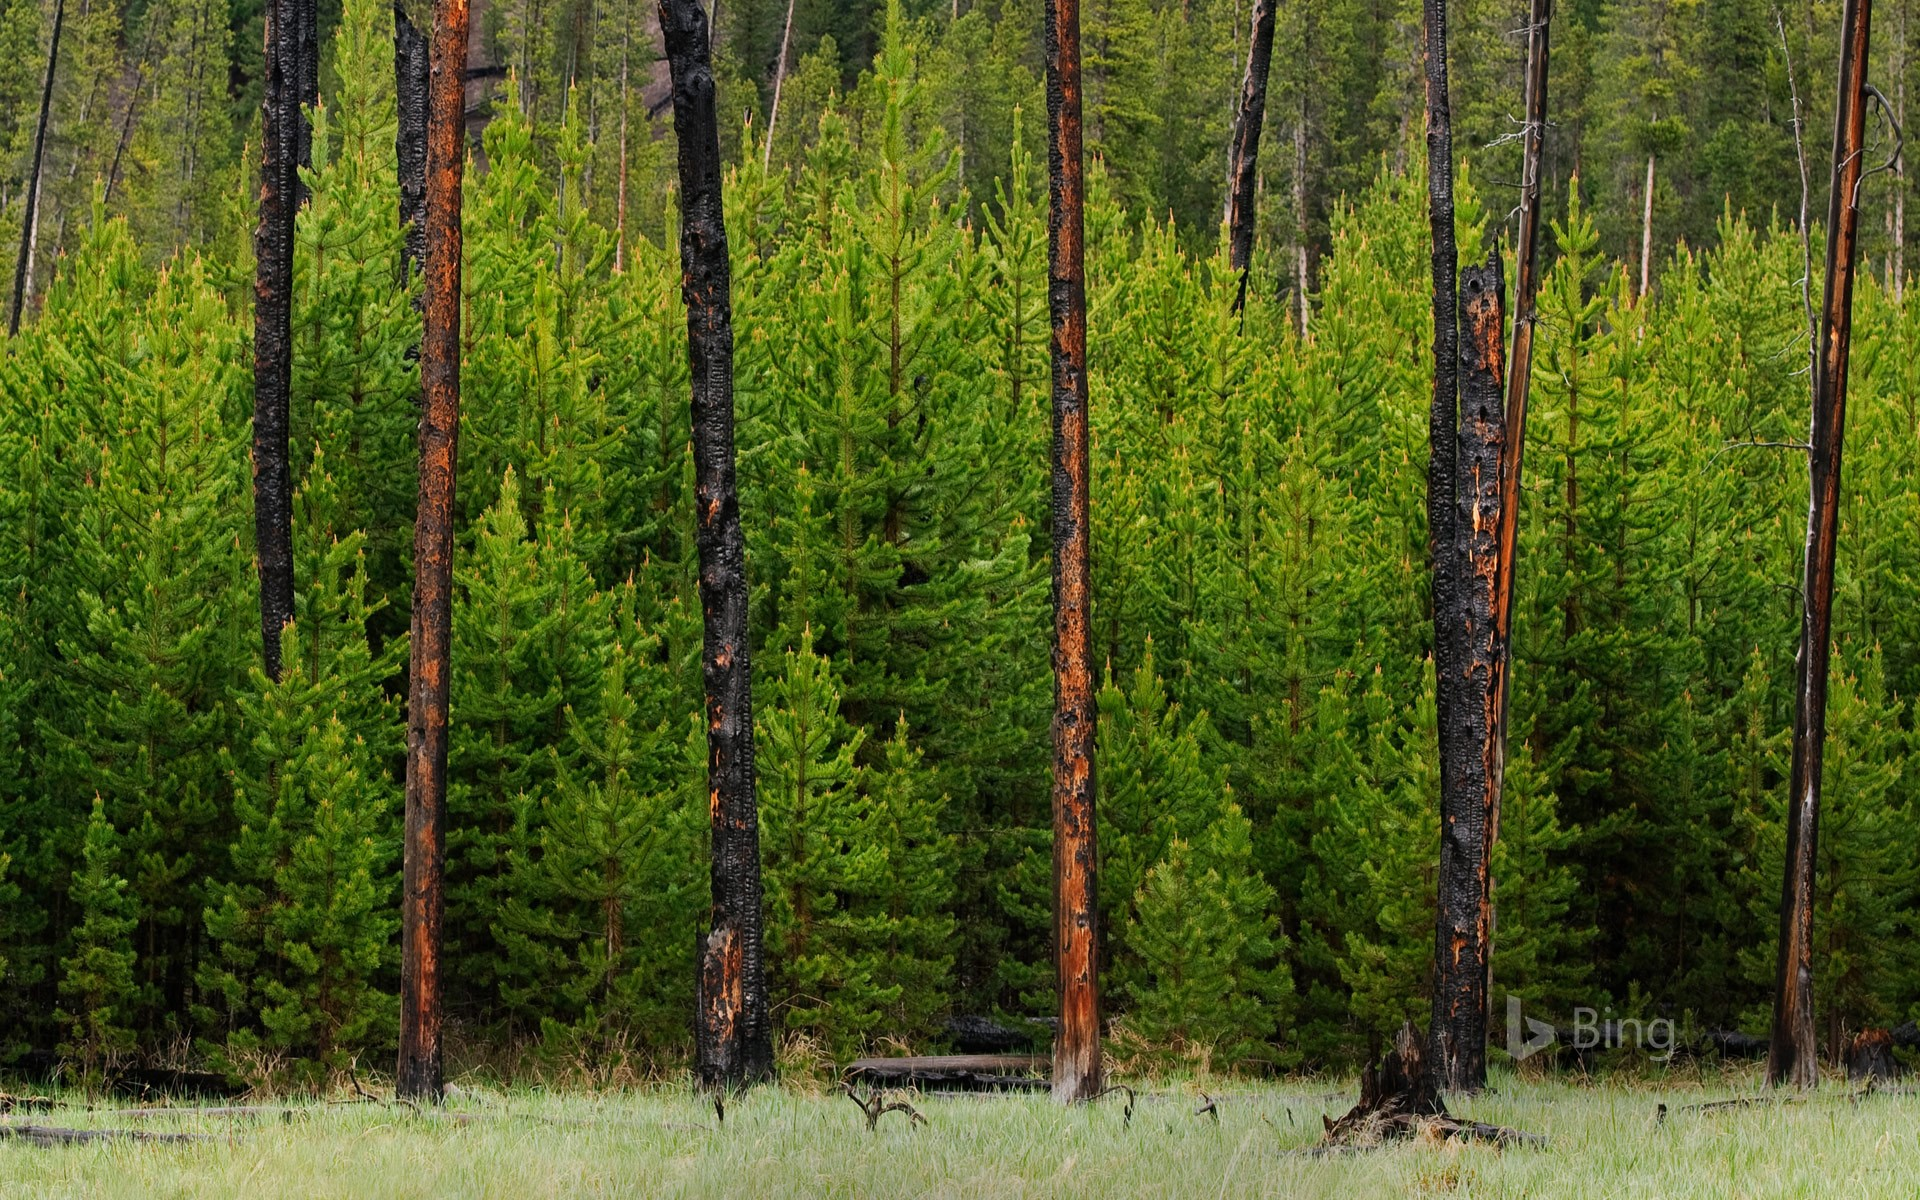 Young trees grow amid trees burned in the 1988 fire in Yellowstone National Park, Wyoming